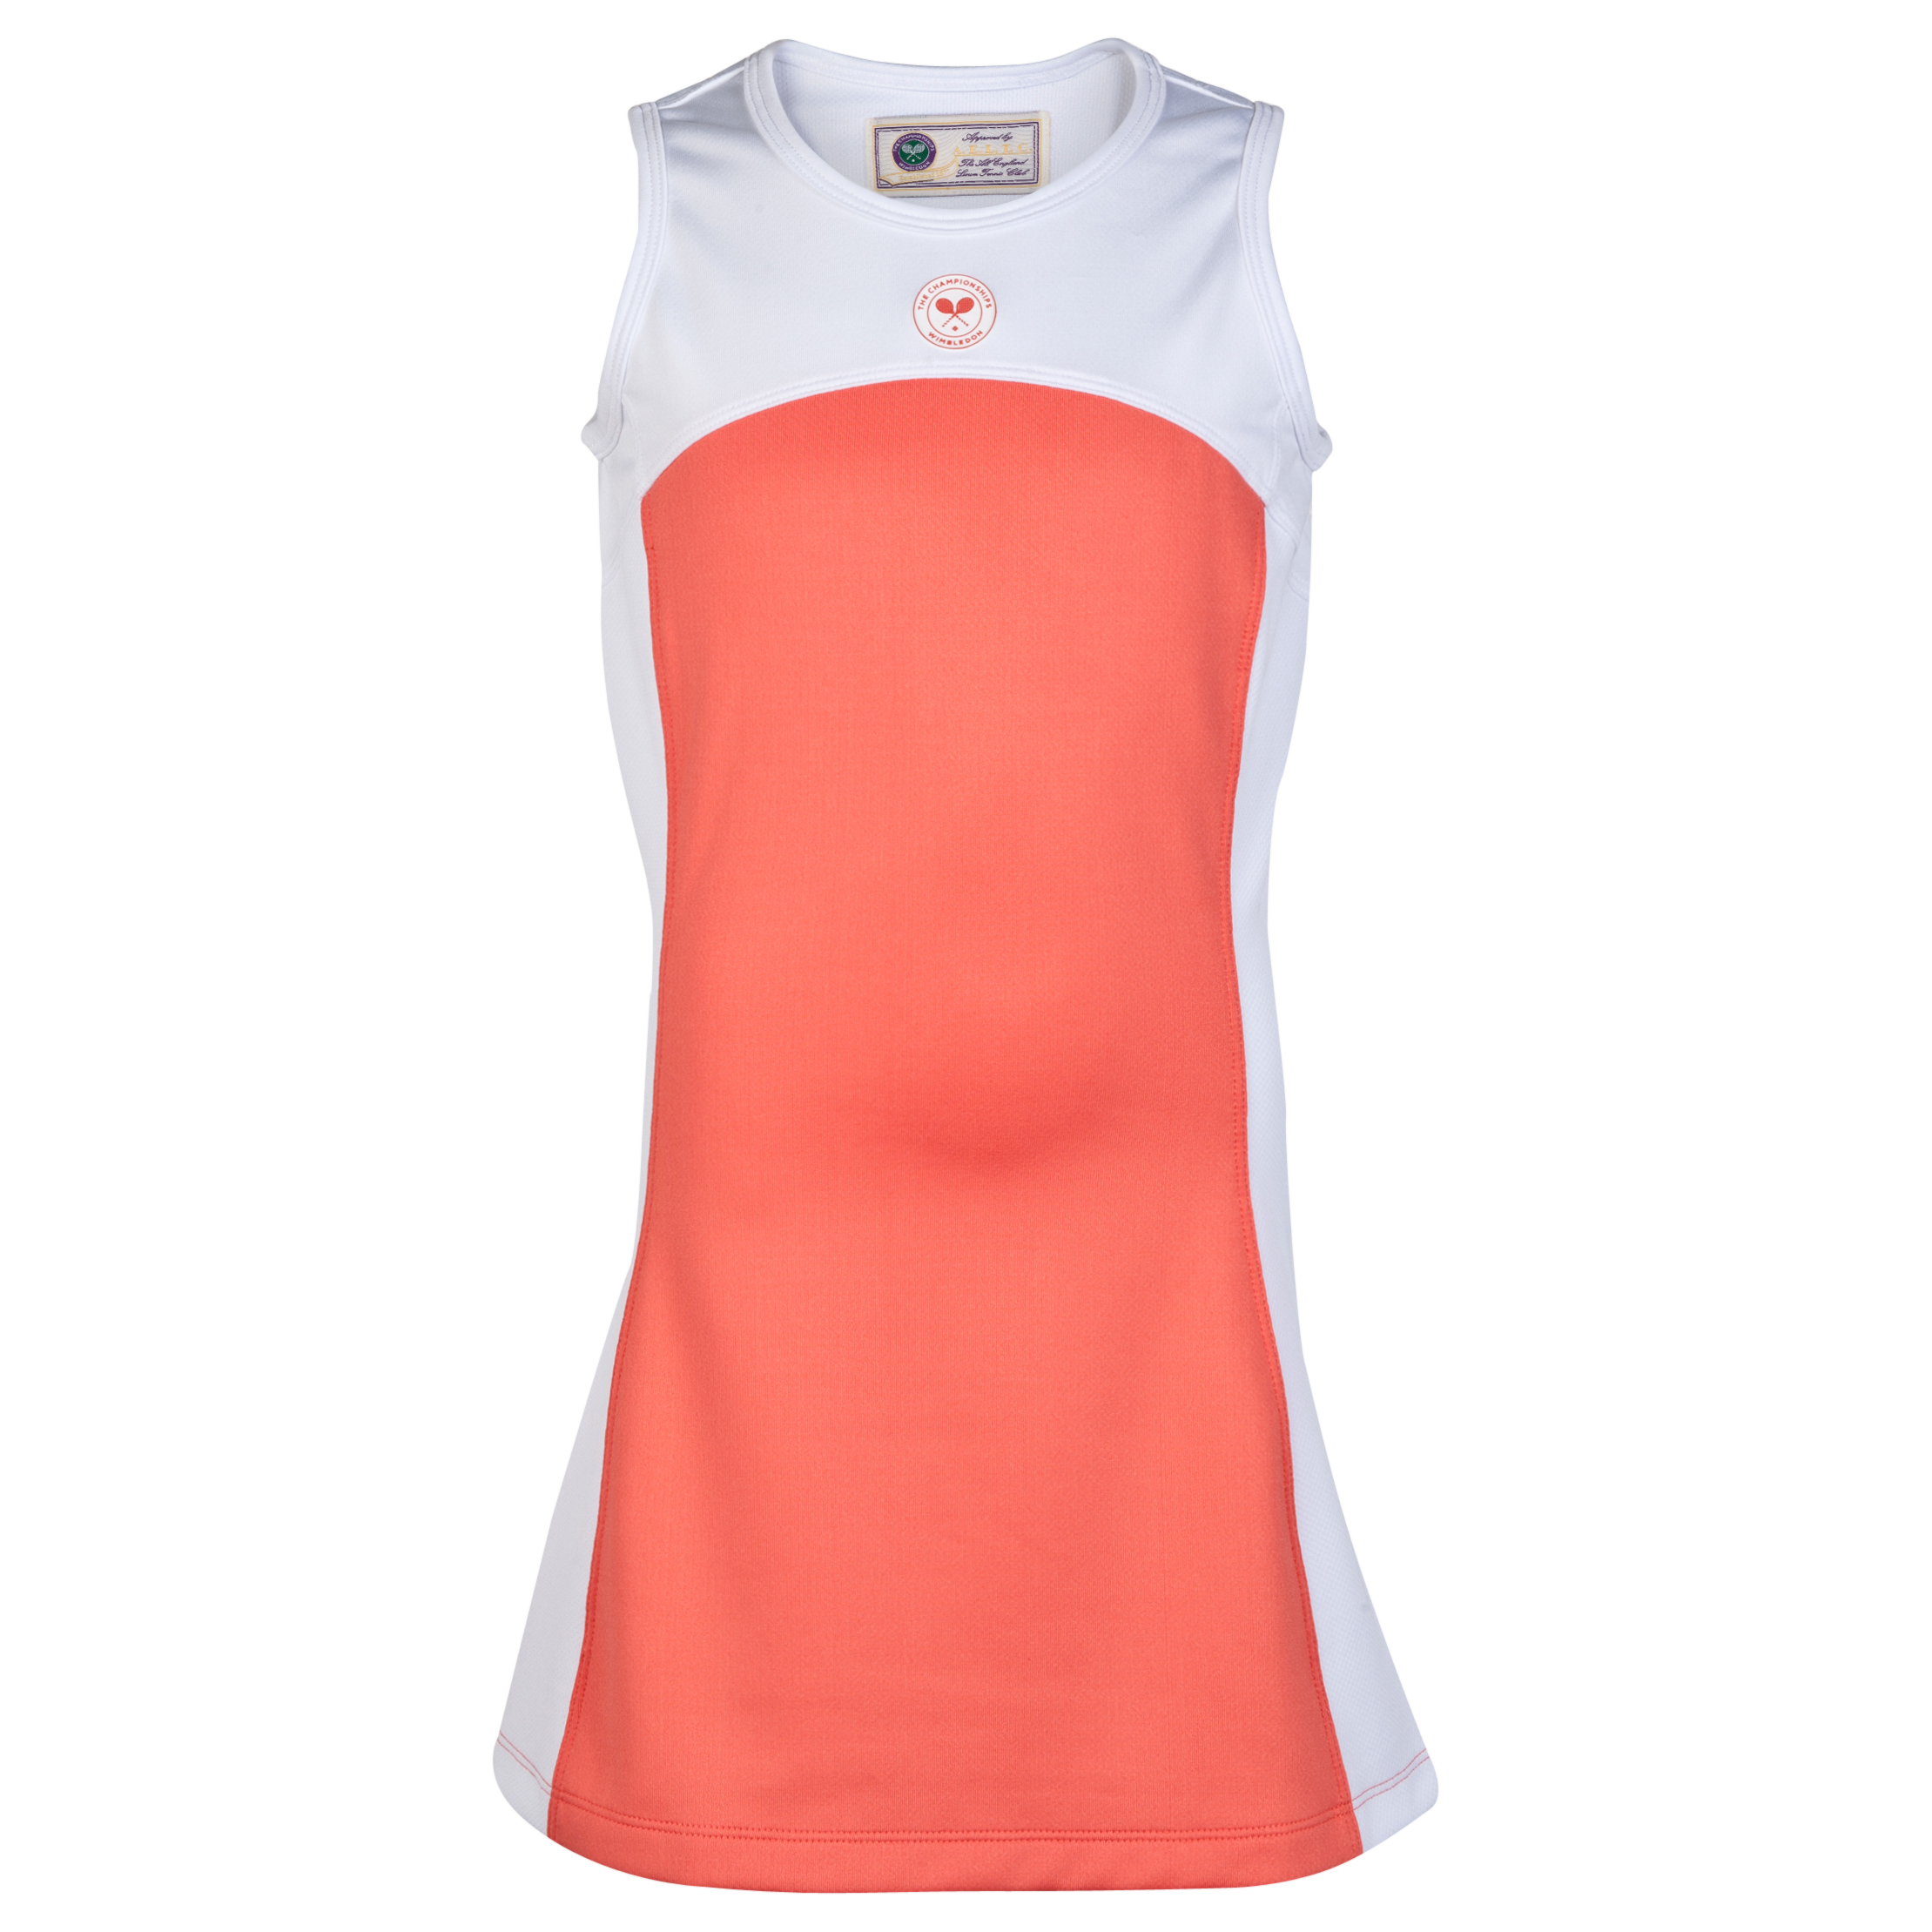 Wimbledon Sleeveless Tennis Dress - Girls